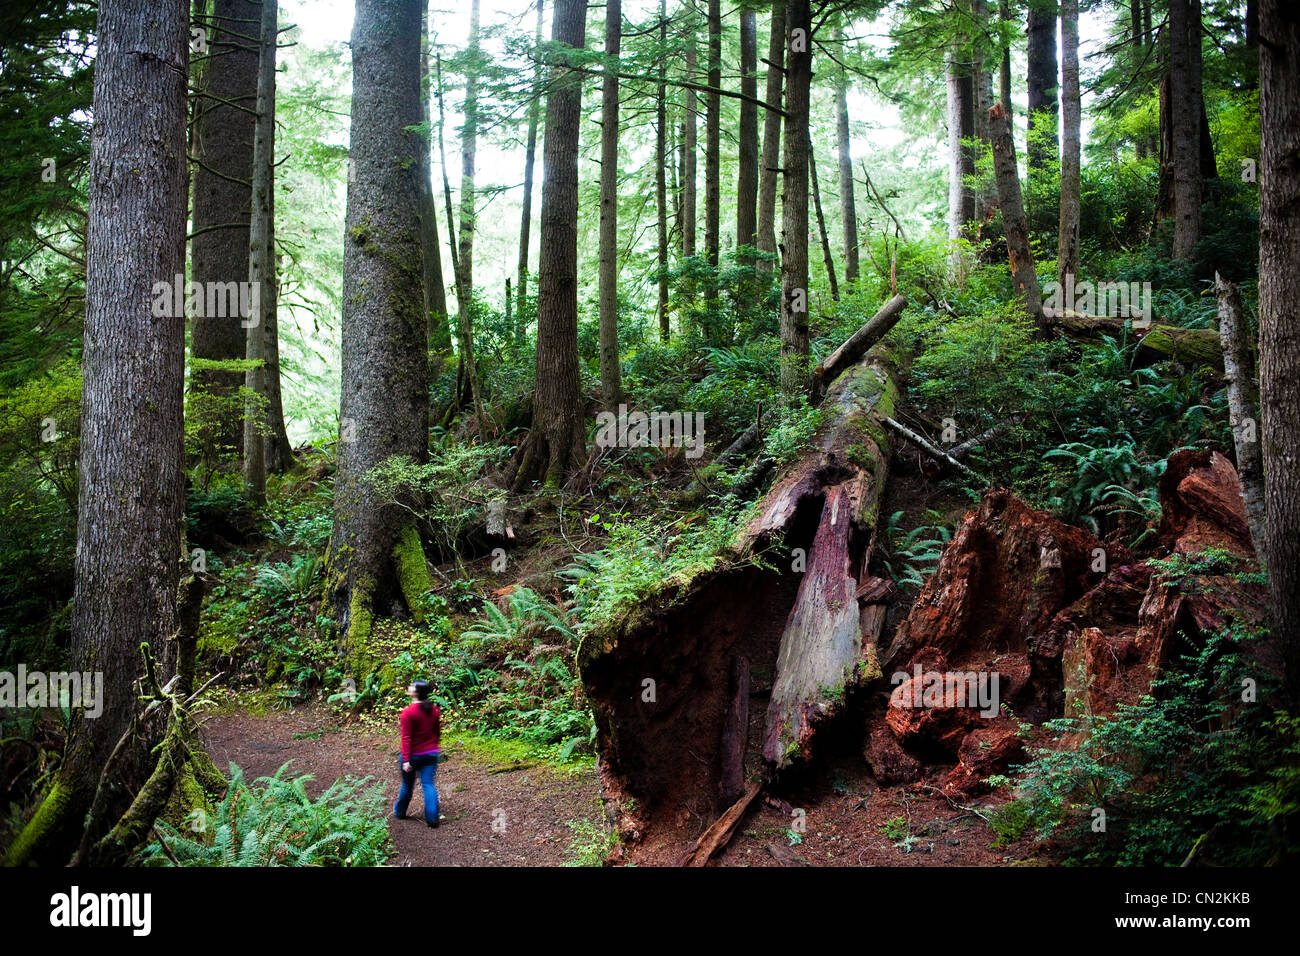 Woman walking through forest with fallen tree - Stock Image